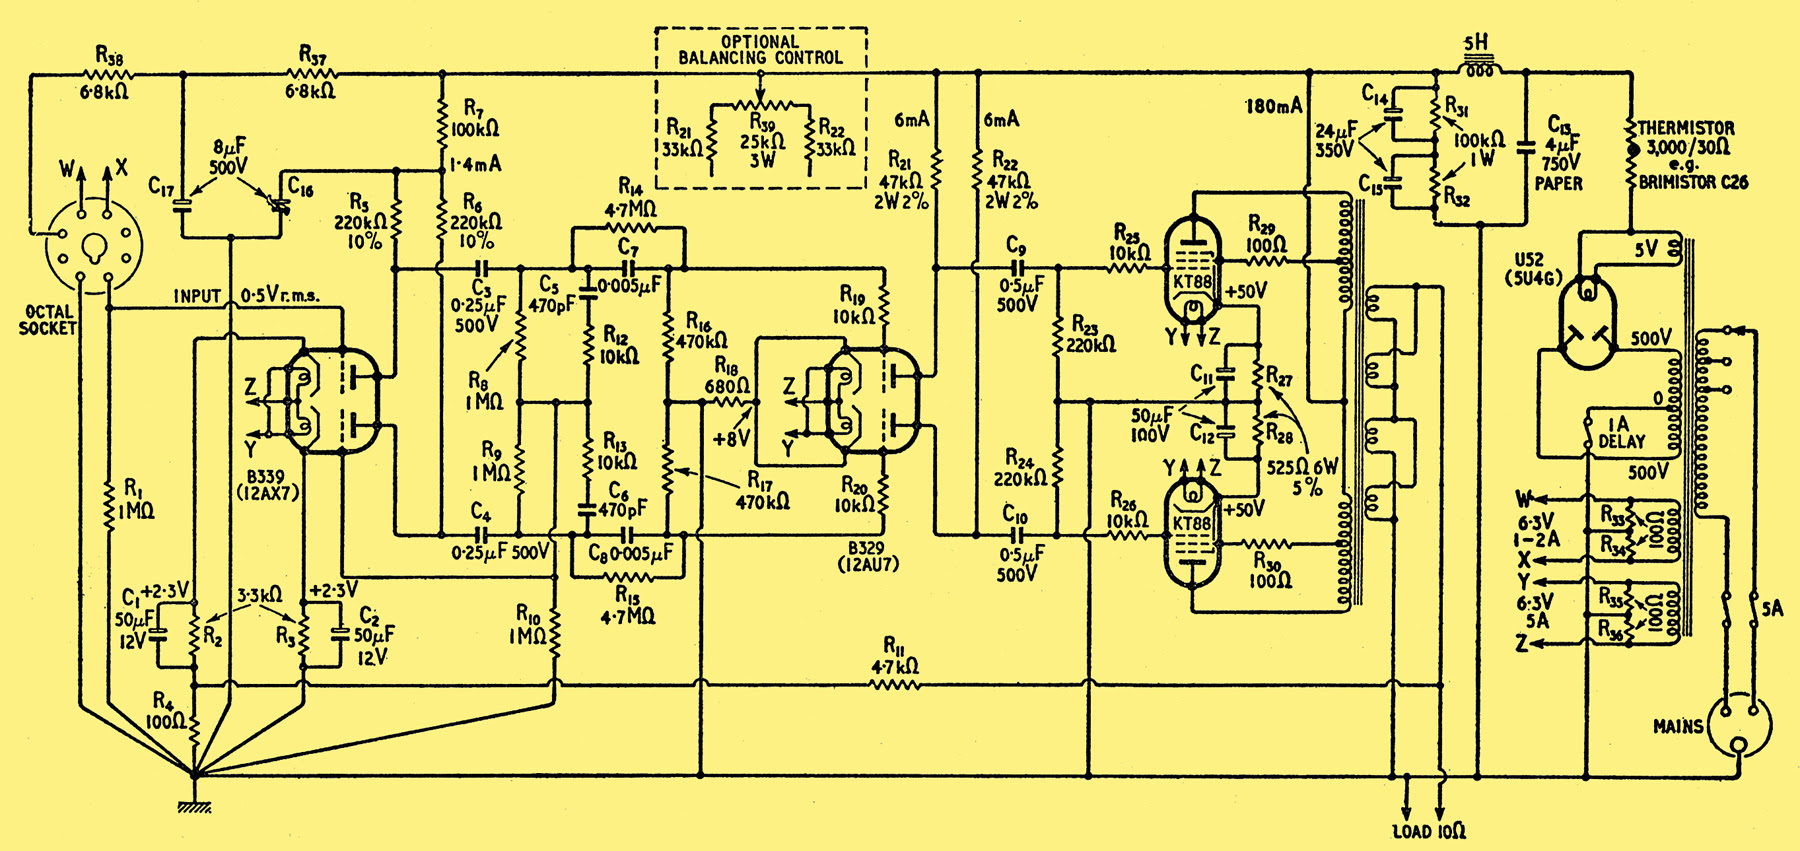 2000w power amplifier circuit diagram load trail wiring 10000 watts schematic